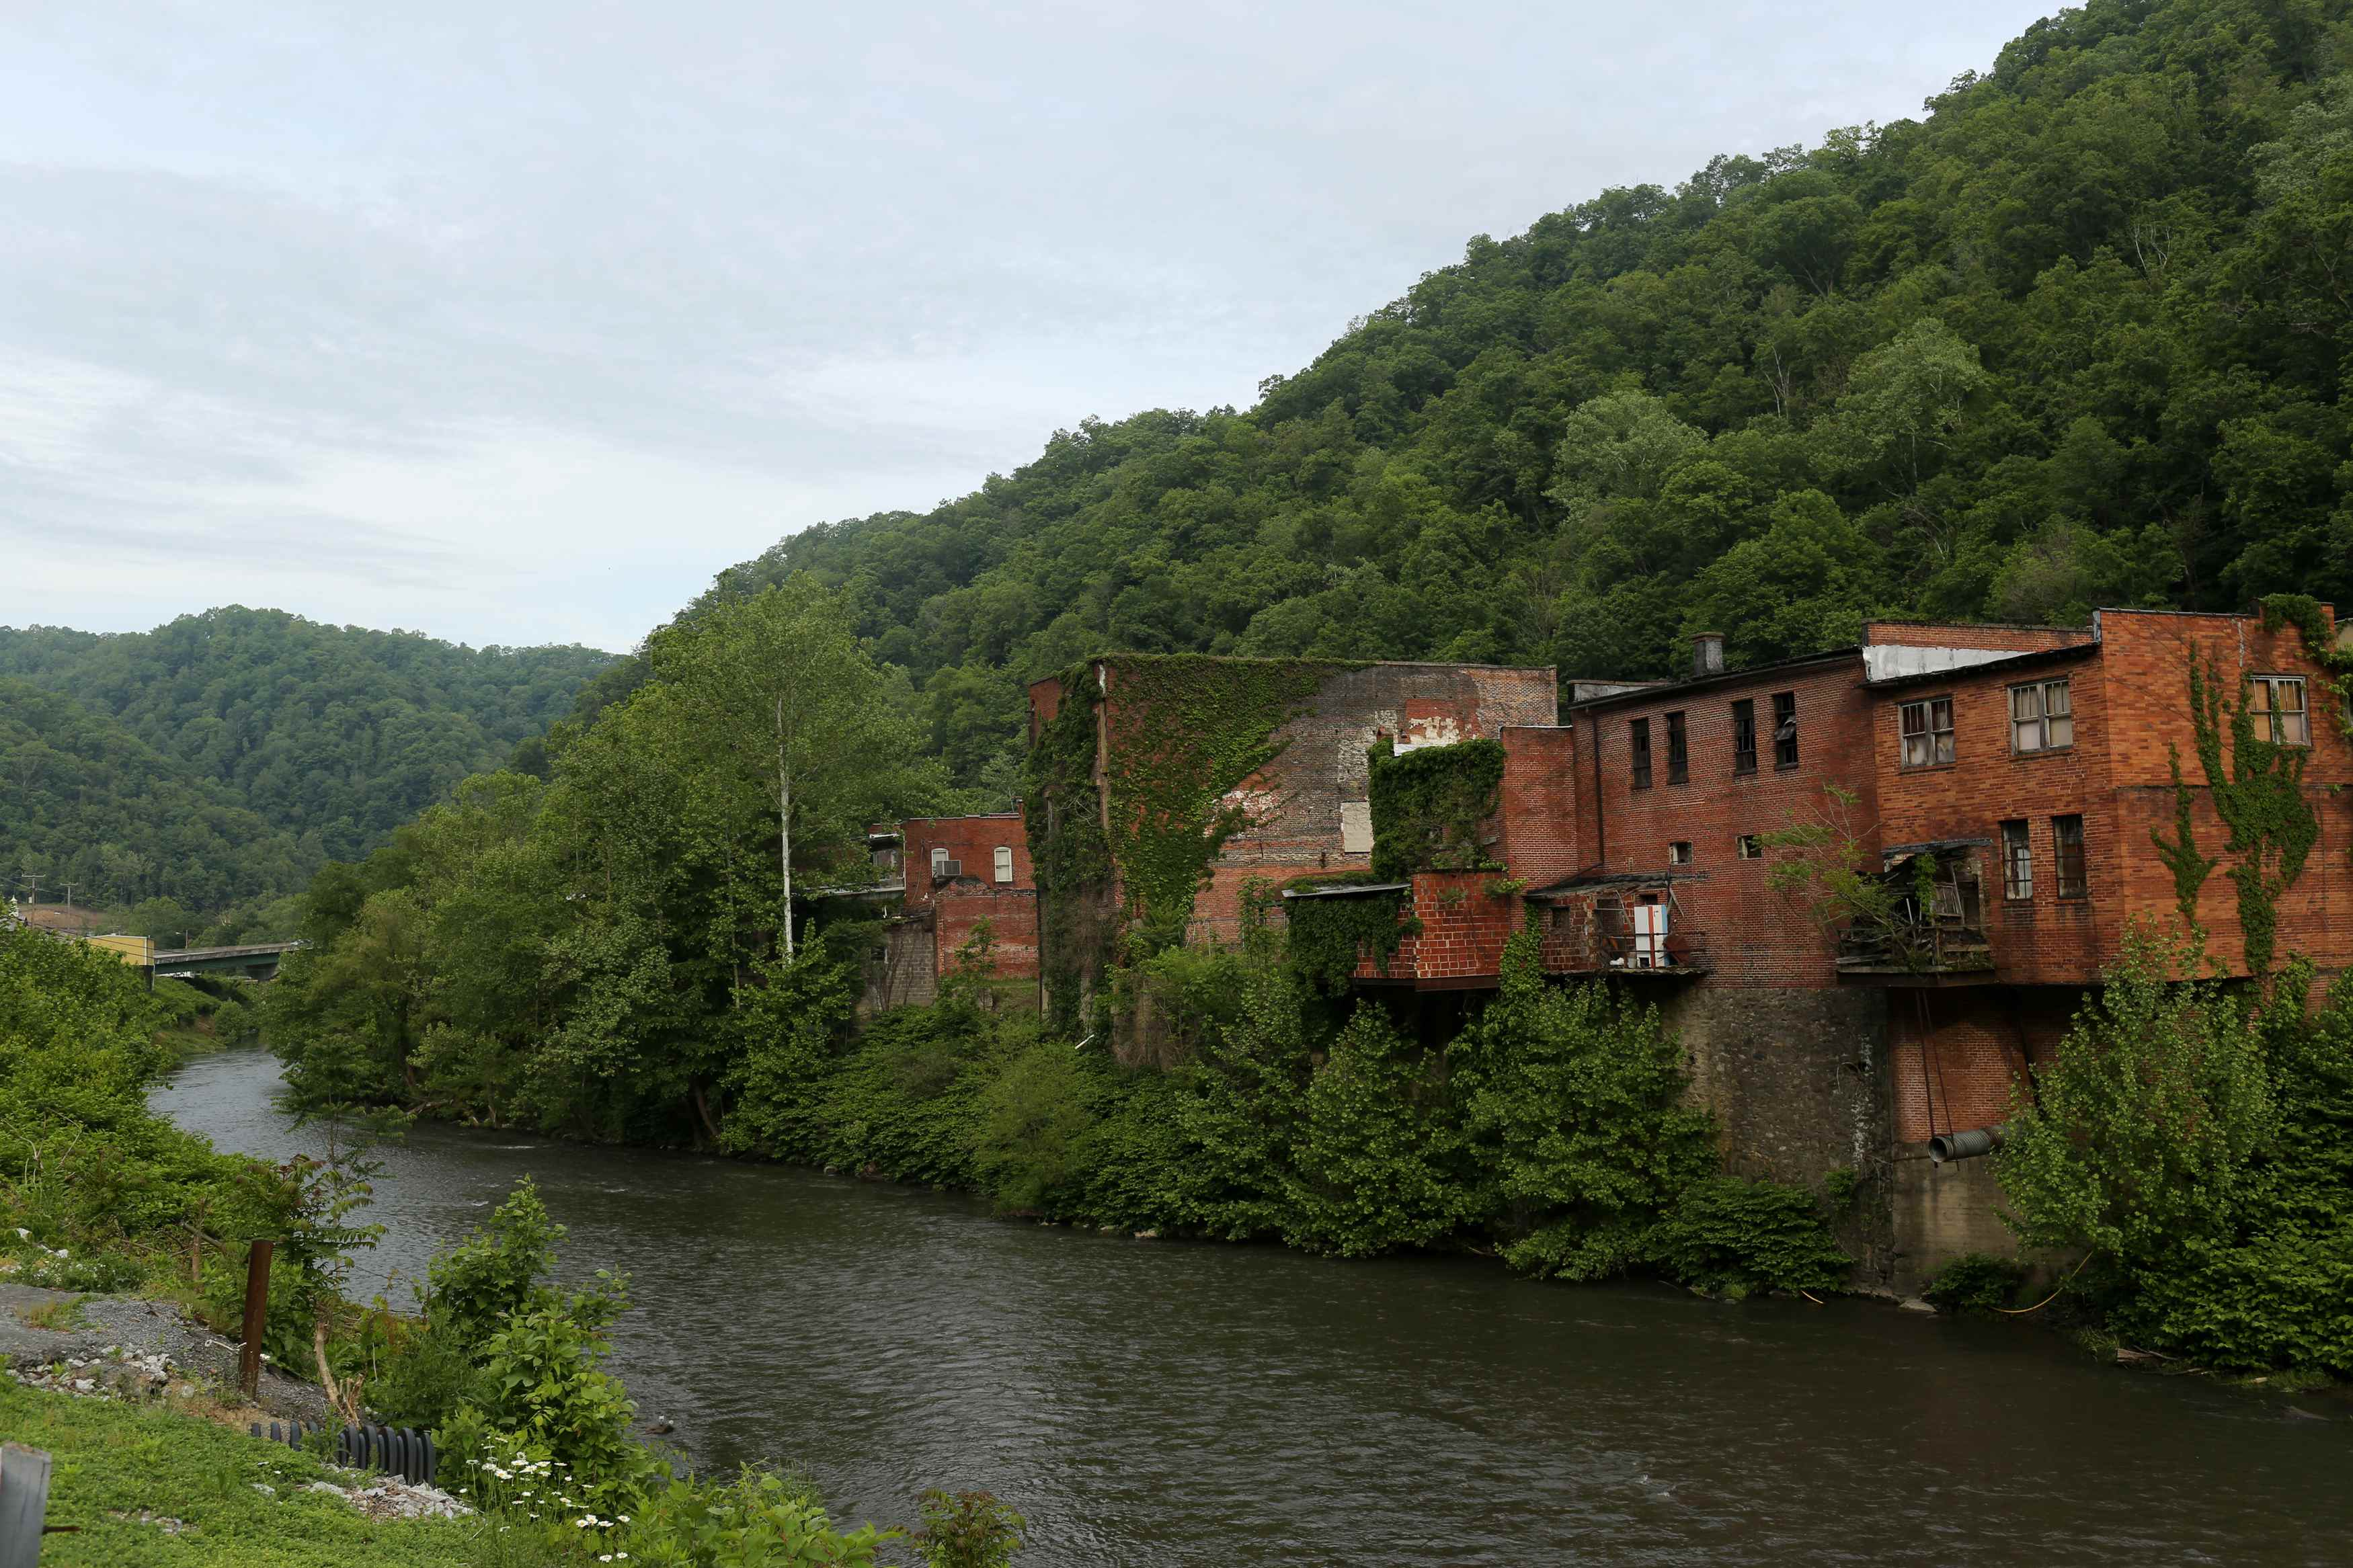 Decline along West Virginia's King Coal Highway